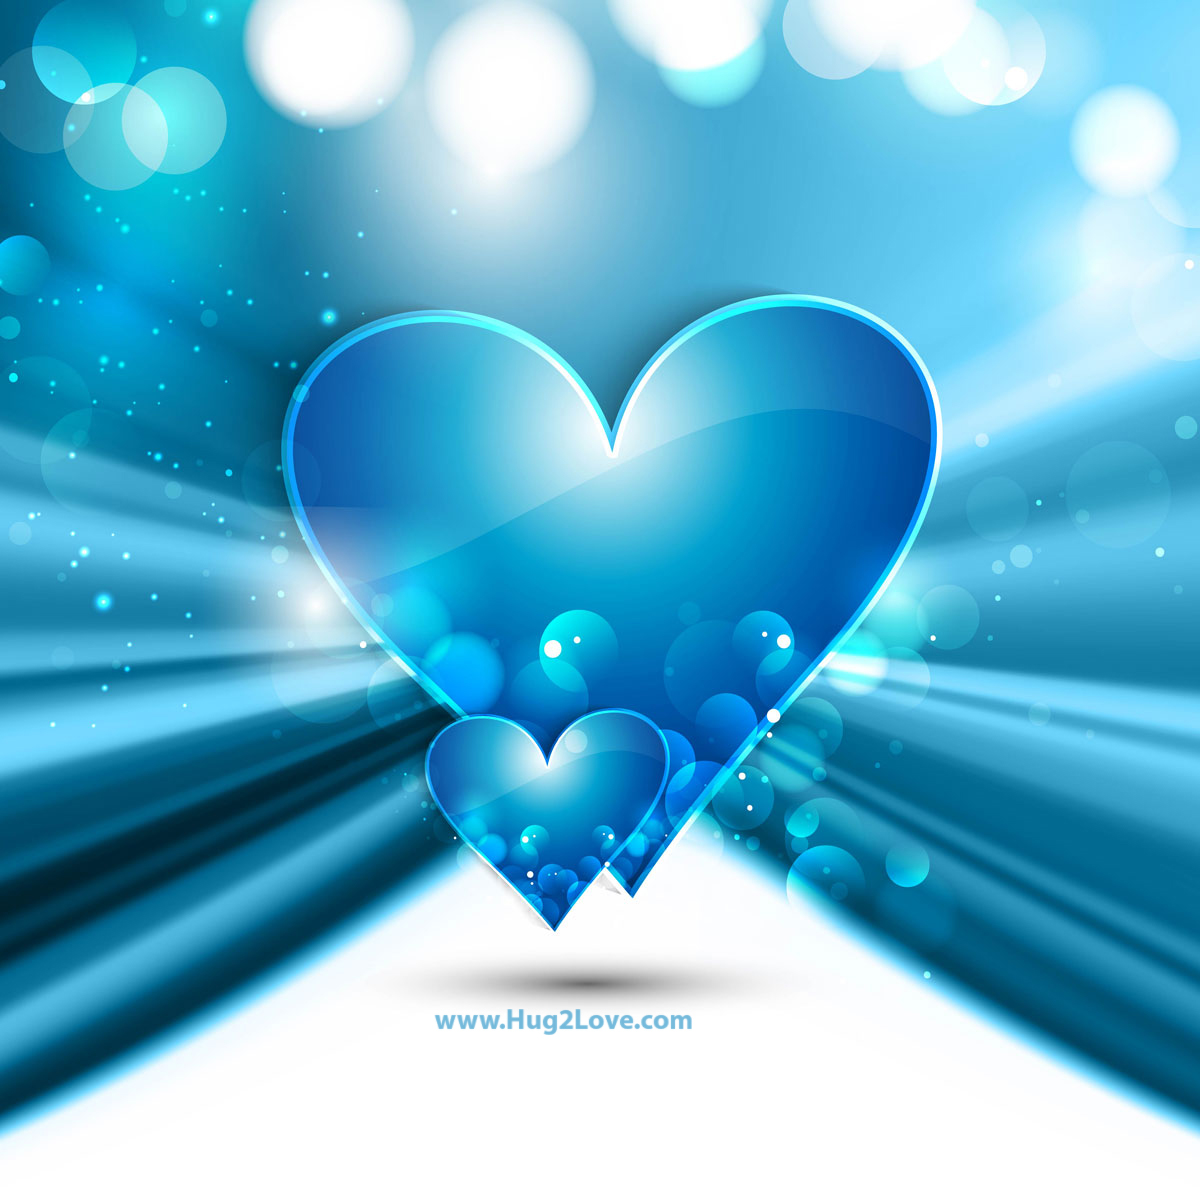 3d Wallpapers Blue Theme Wallpaper 100 Happy Valentine S Day Images Amp Wallpapers 2018